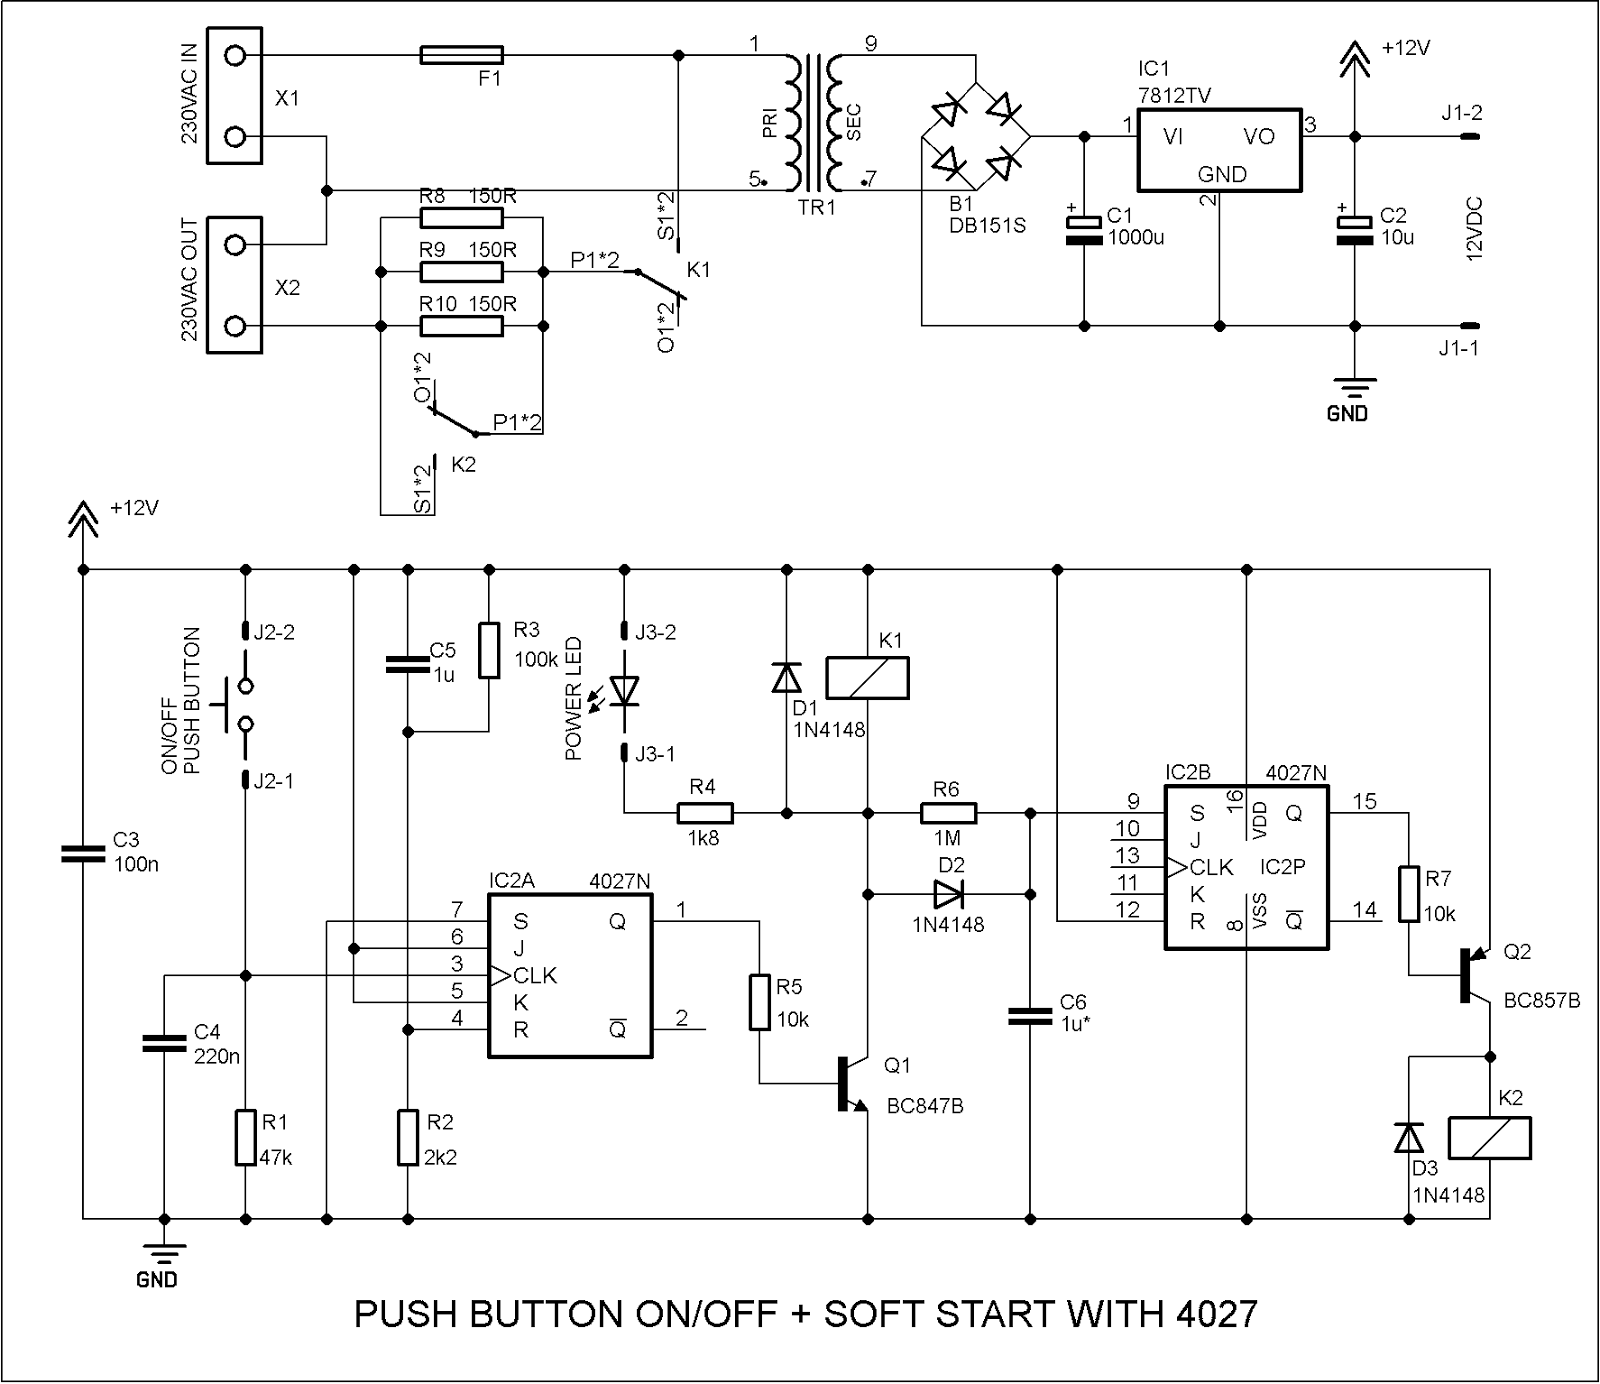 hight resolution of the first timer is wired as push button toggle switch and the second is an ordinary switch connected again with delay circuit